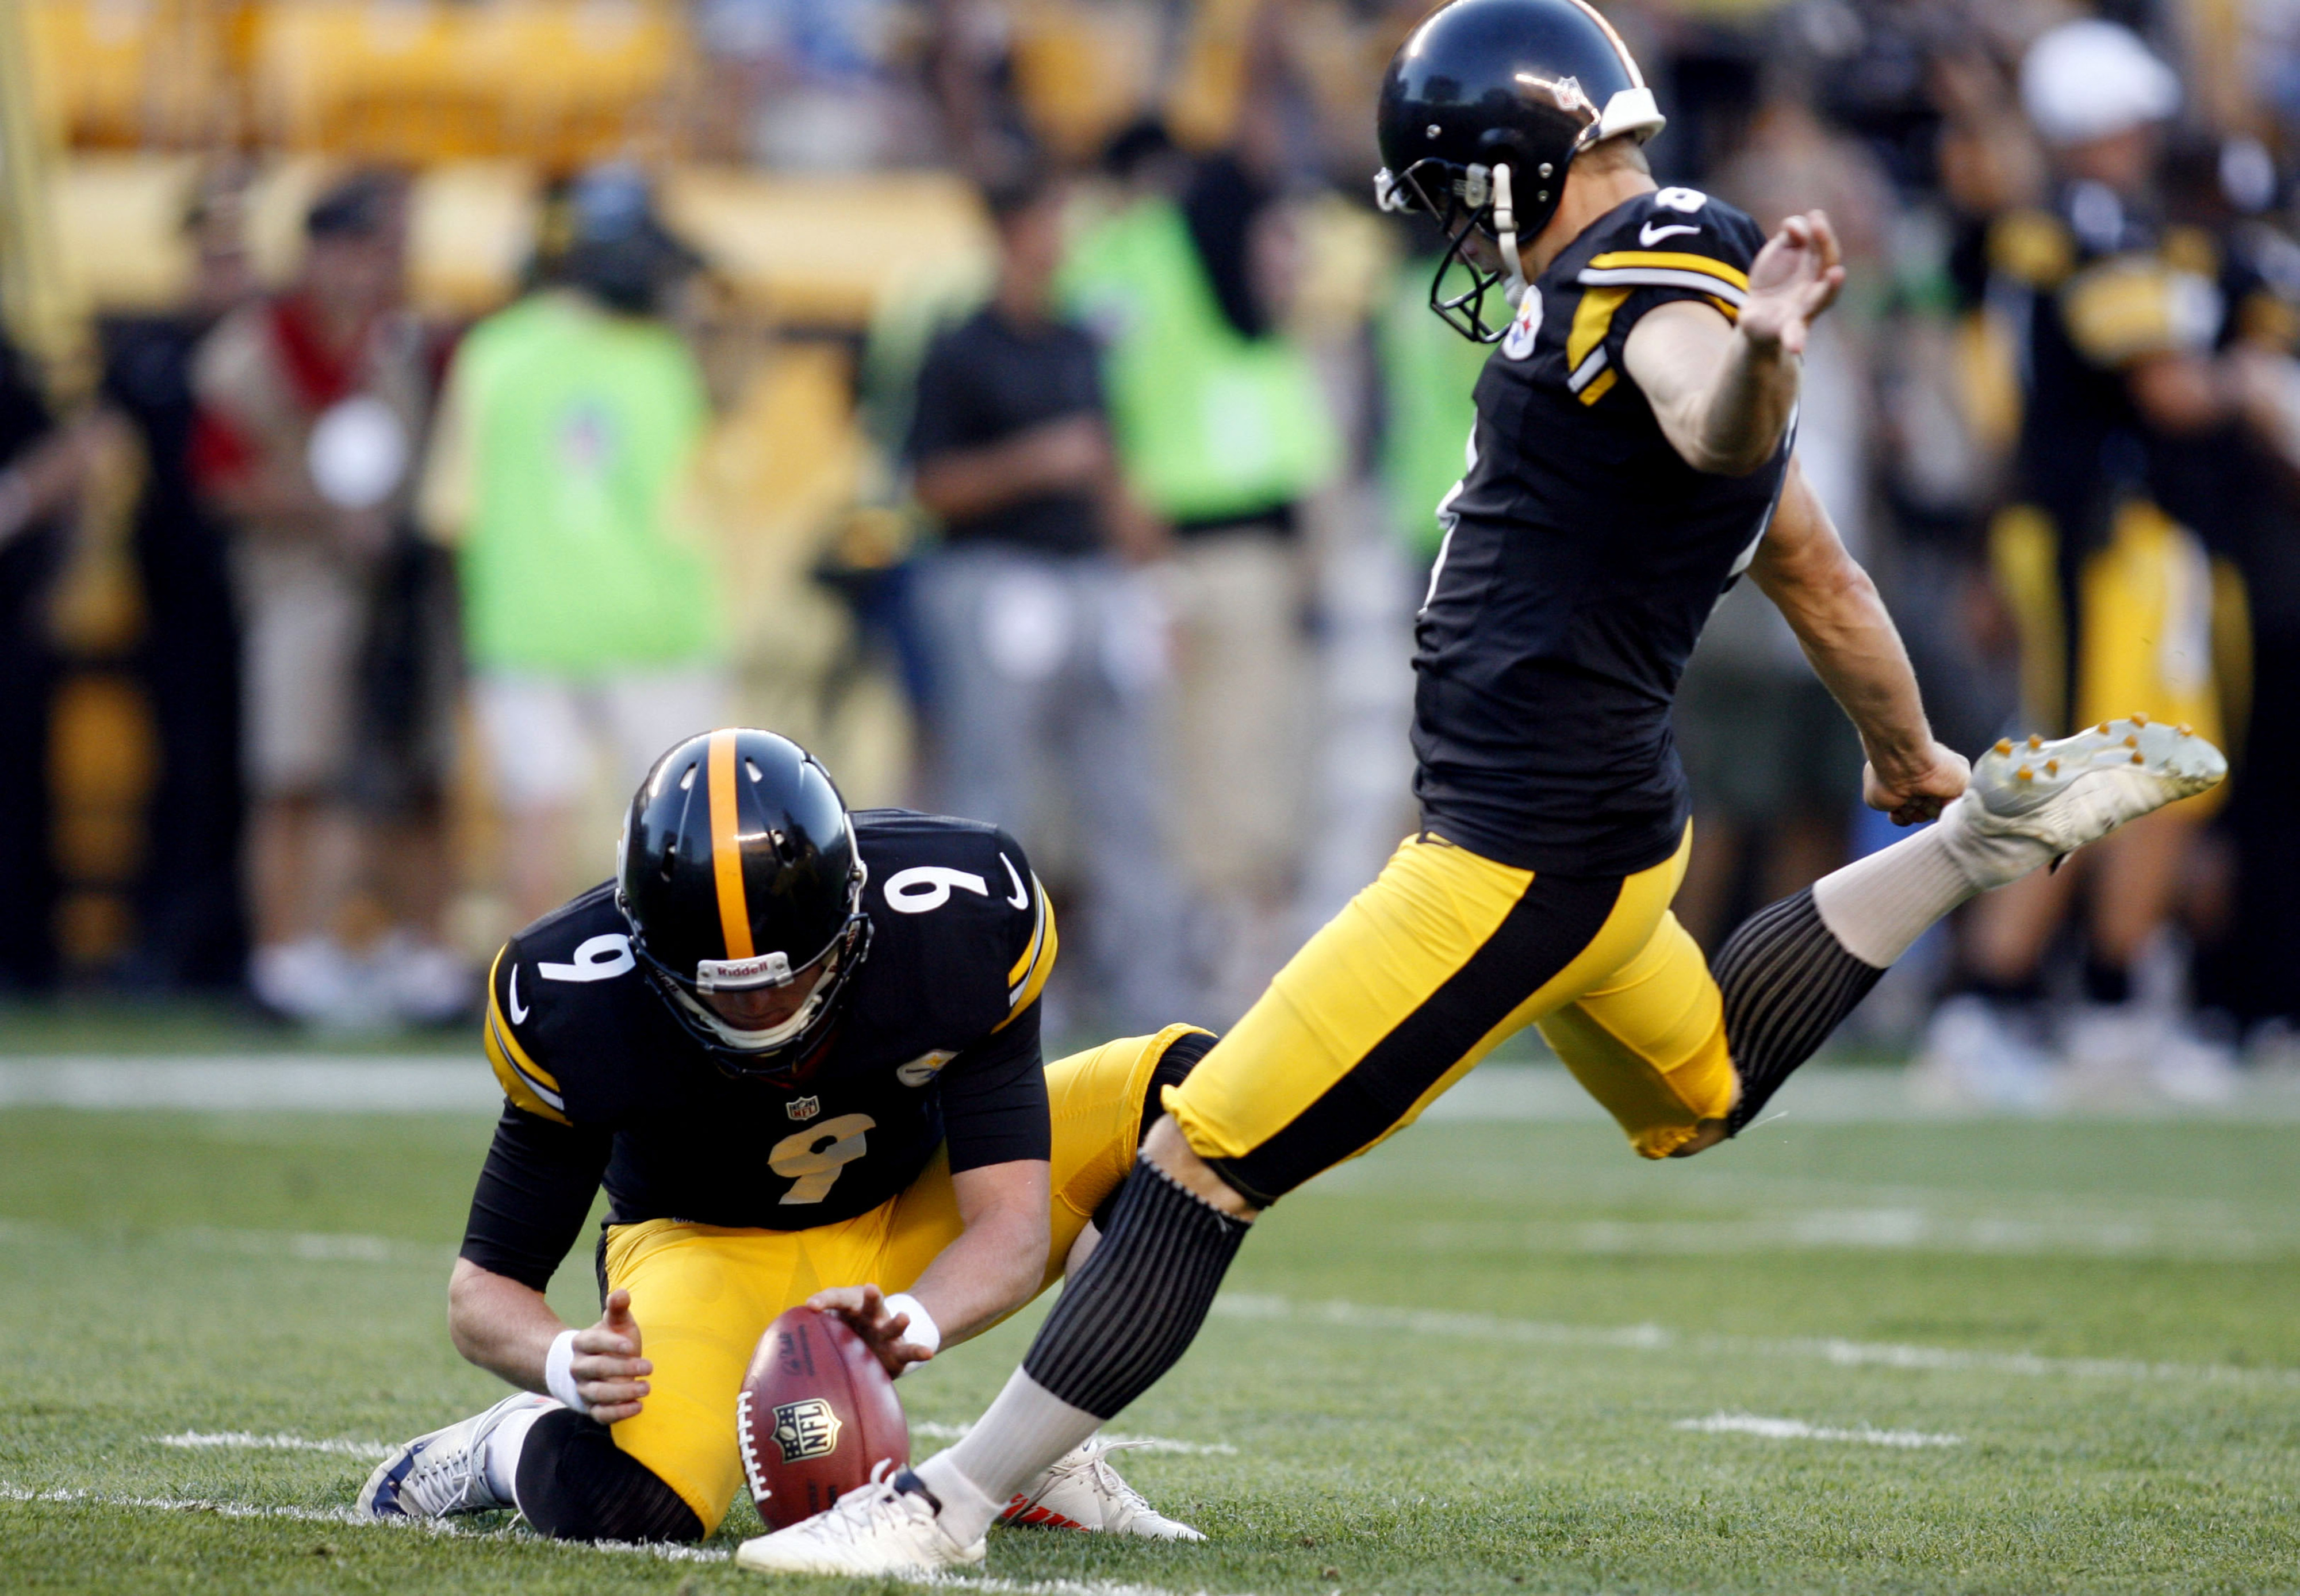 August 30, 2012; Pittsburgh, PA, USA; Pittsburgh Steelers kicker Shaun Suisham (6) kicks an extra point from the hold of Steelers punter Drew Butler (9) against during the first quarter at Heinz Field. Mandatory Credit: Charles LeClaire-US PRESSWIRE